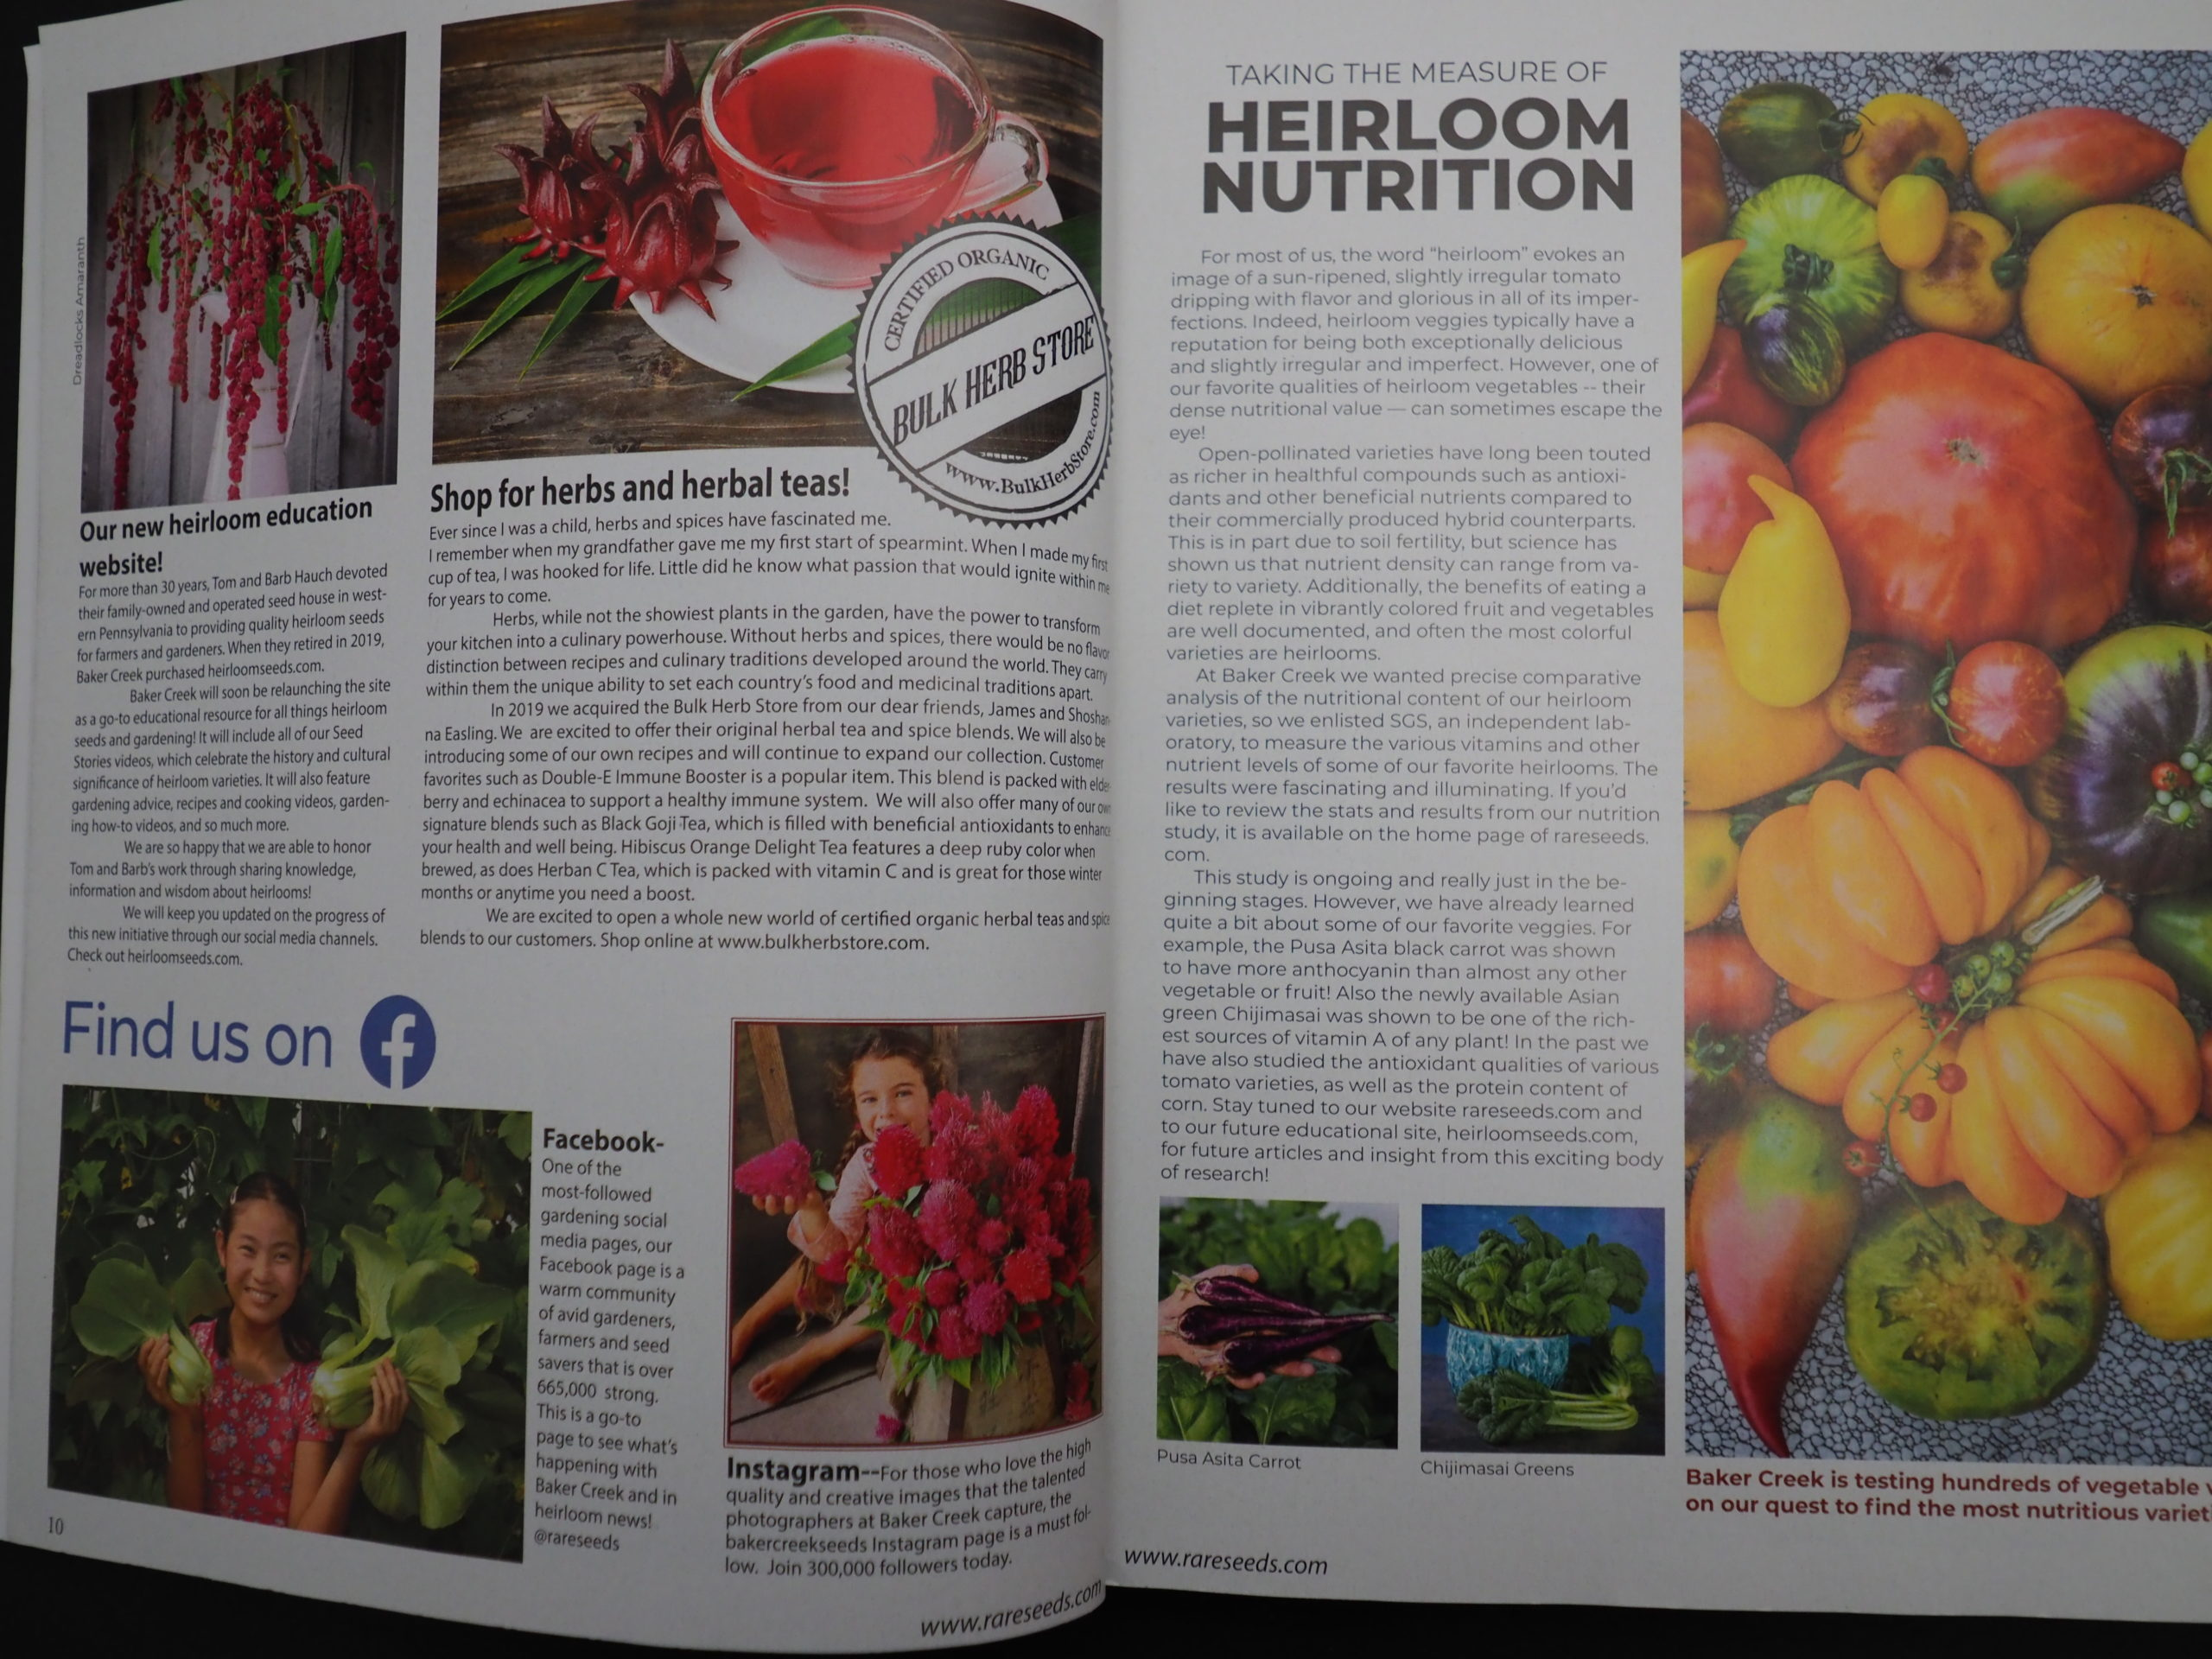 Nearly an inch thick, the 2021 Whole Seed Catalog is a must-have encyclopedia when it comes to heirlooms and open-pollinated seeds as well as pages and pages of growing advice.